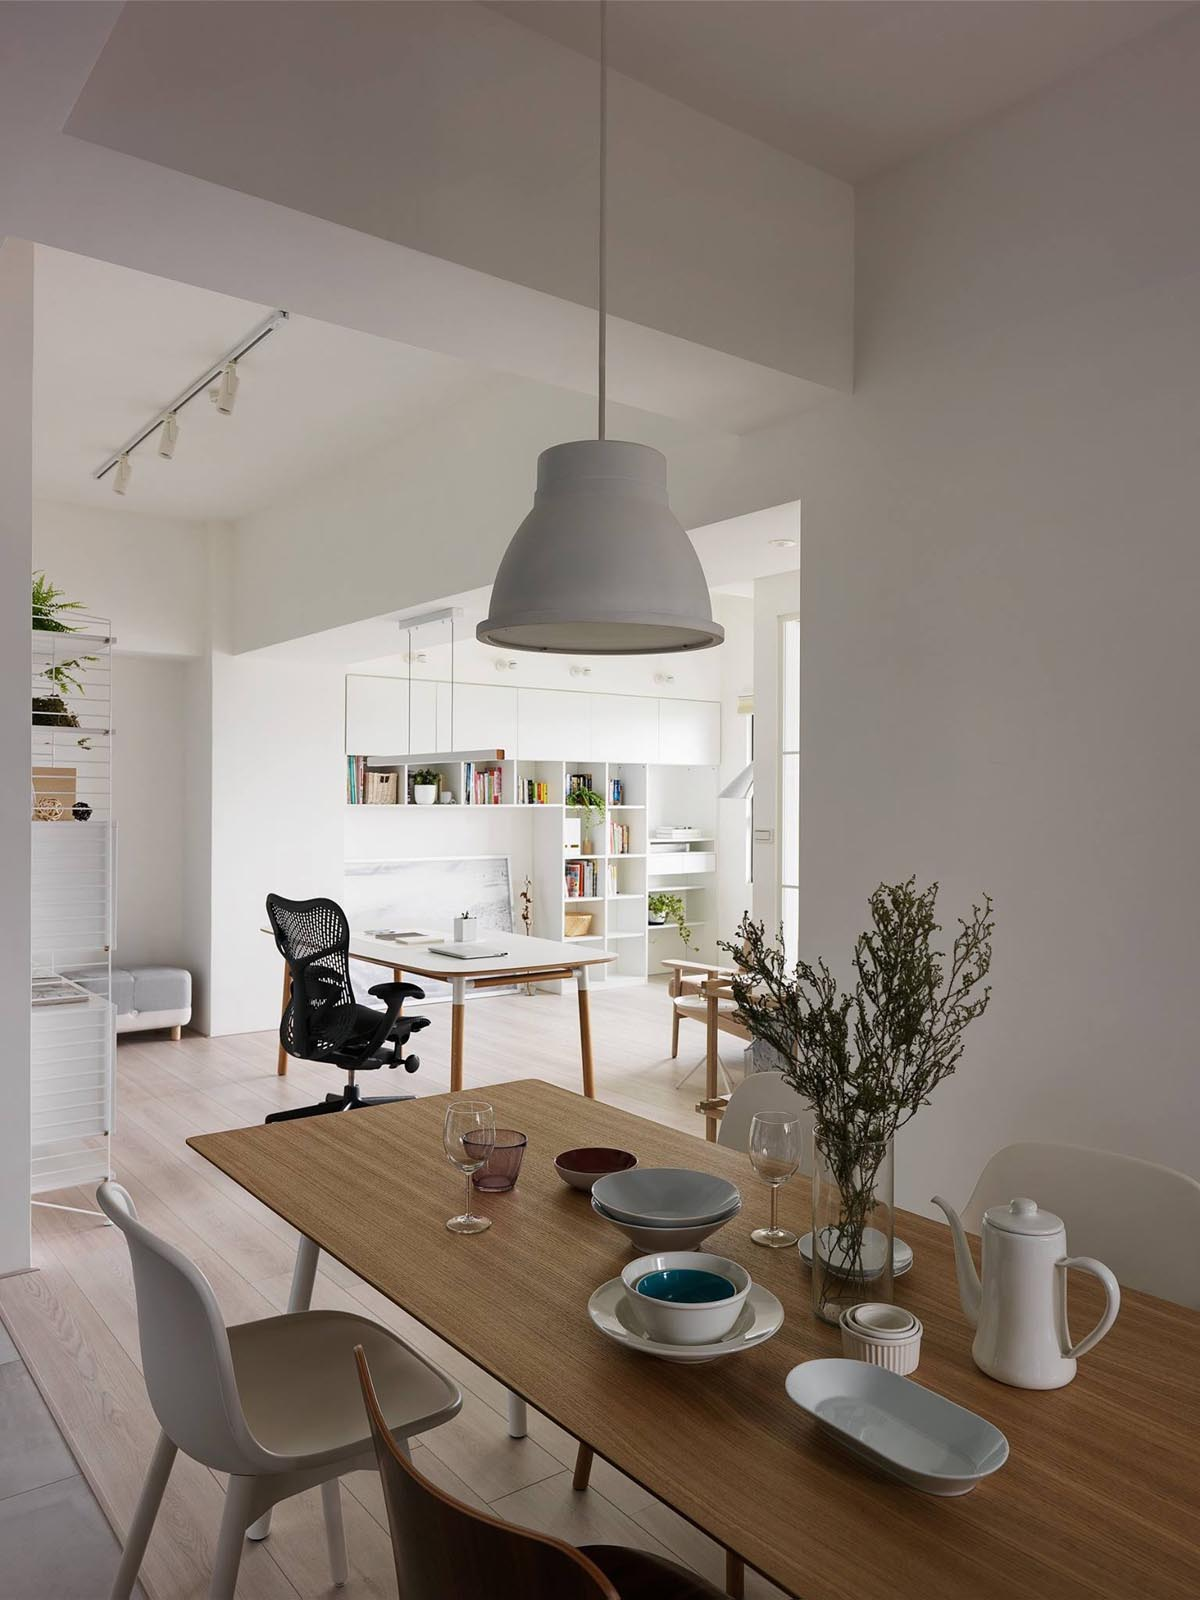 Completely White Apartment With Dominant Central Home Office images 13